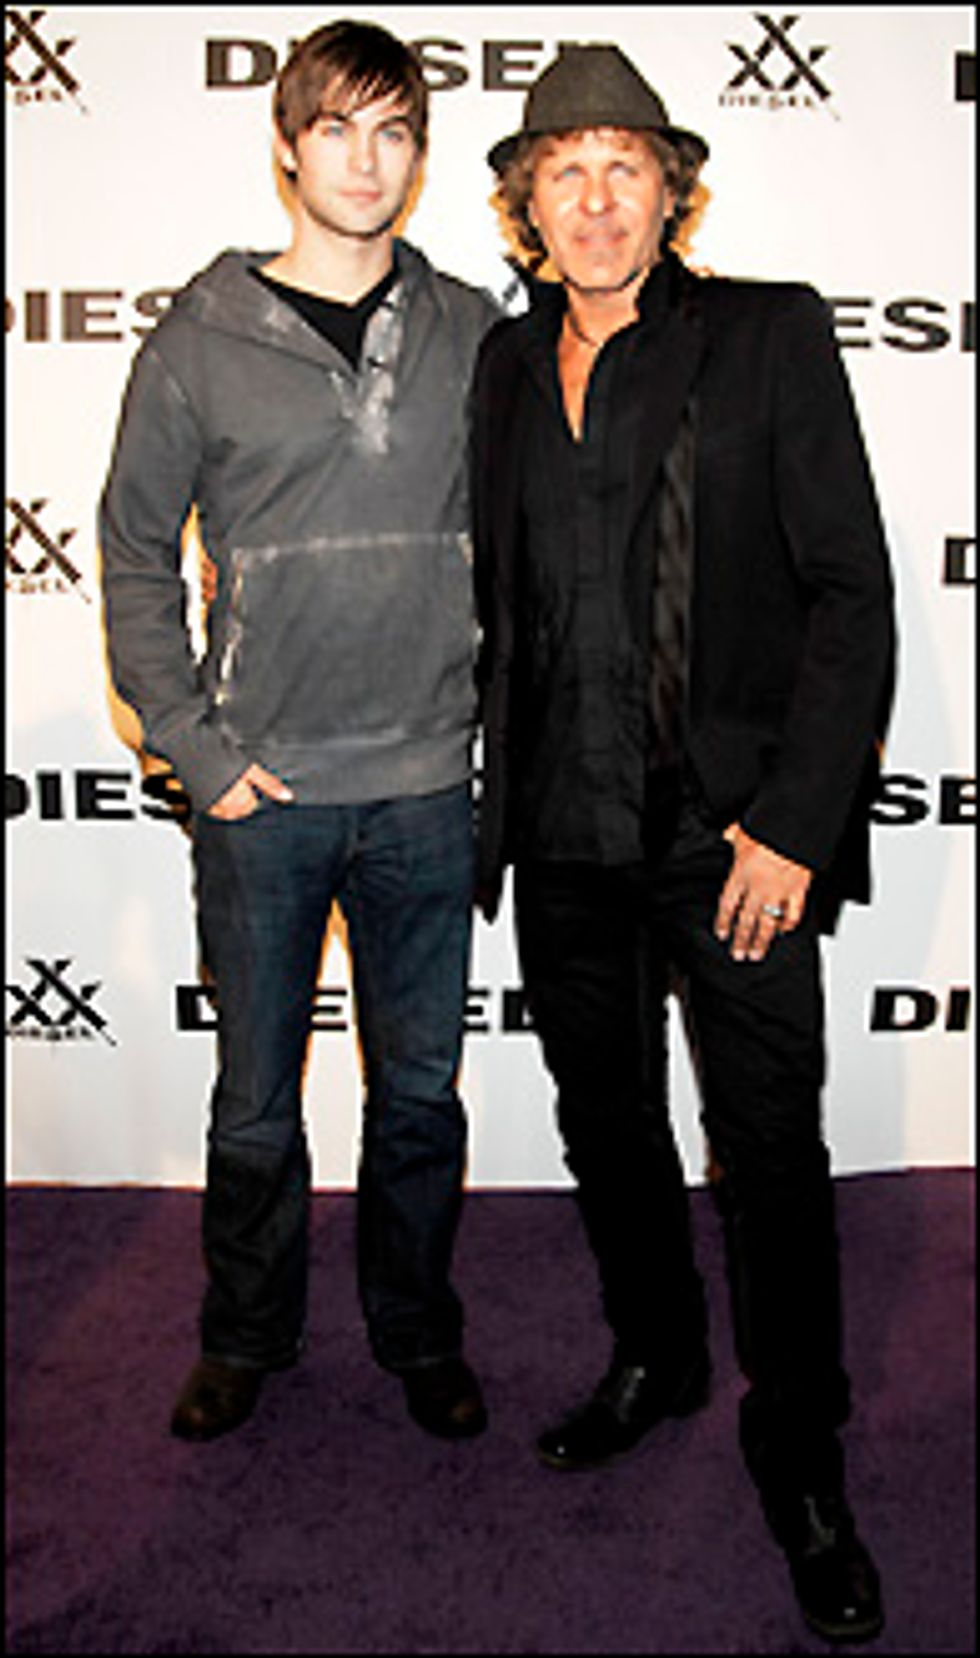 """DIESEL xXx """"Rock and Roll Circus"""" 30th Anniversary Party"""